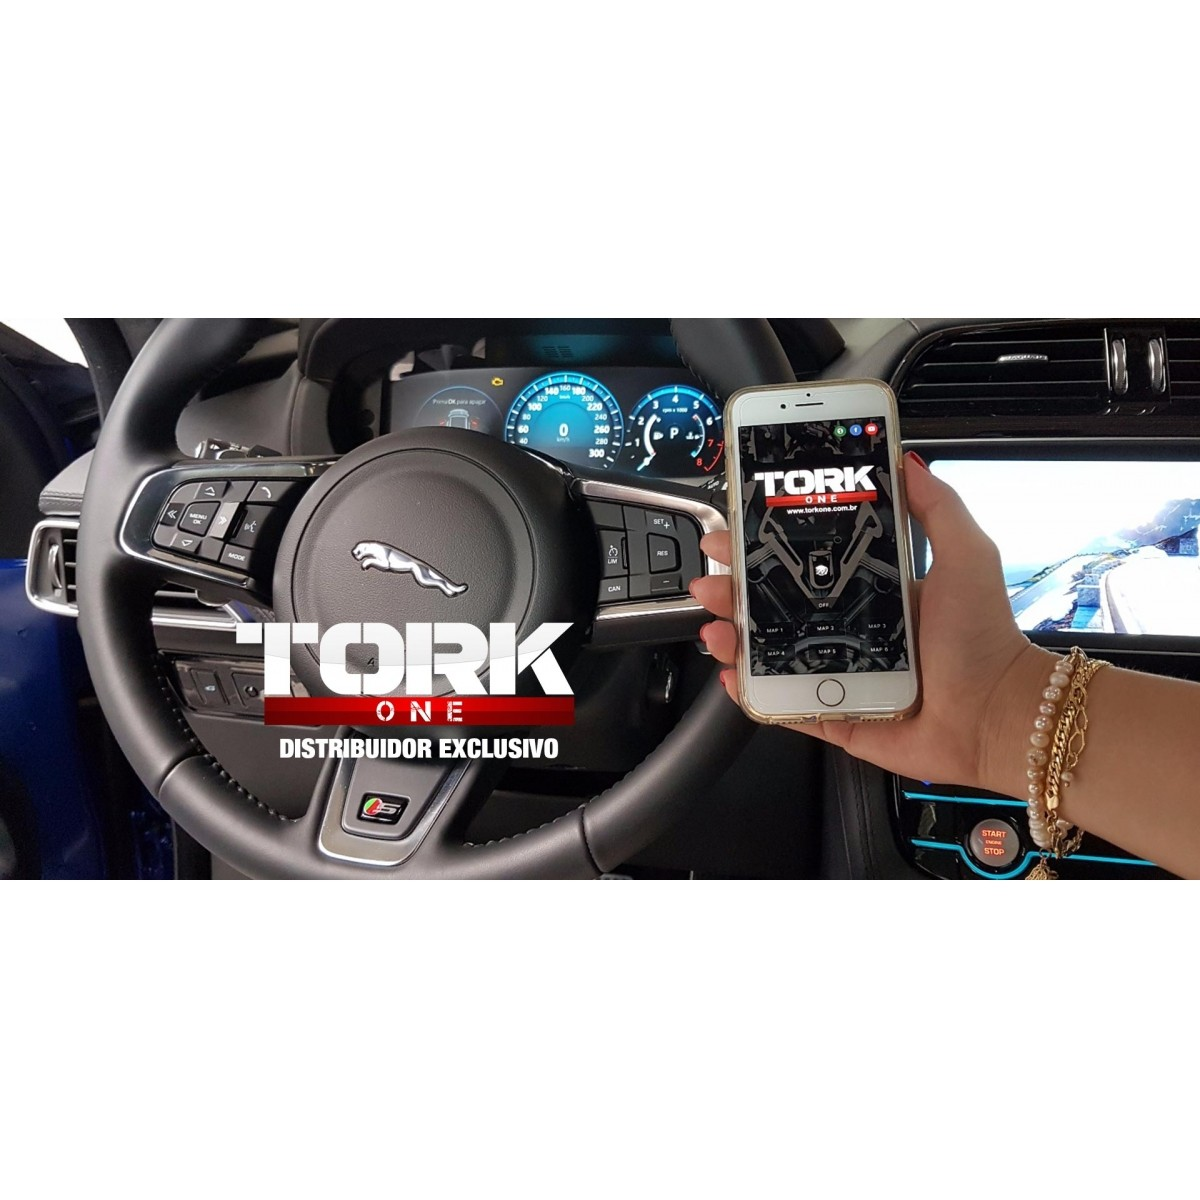 Gás Pedal - Land Rover - Tork One c/s Bluetooth